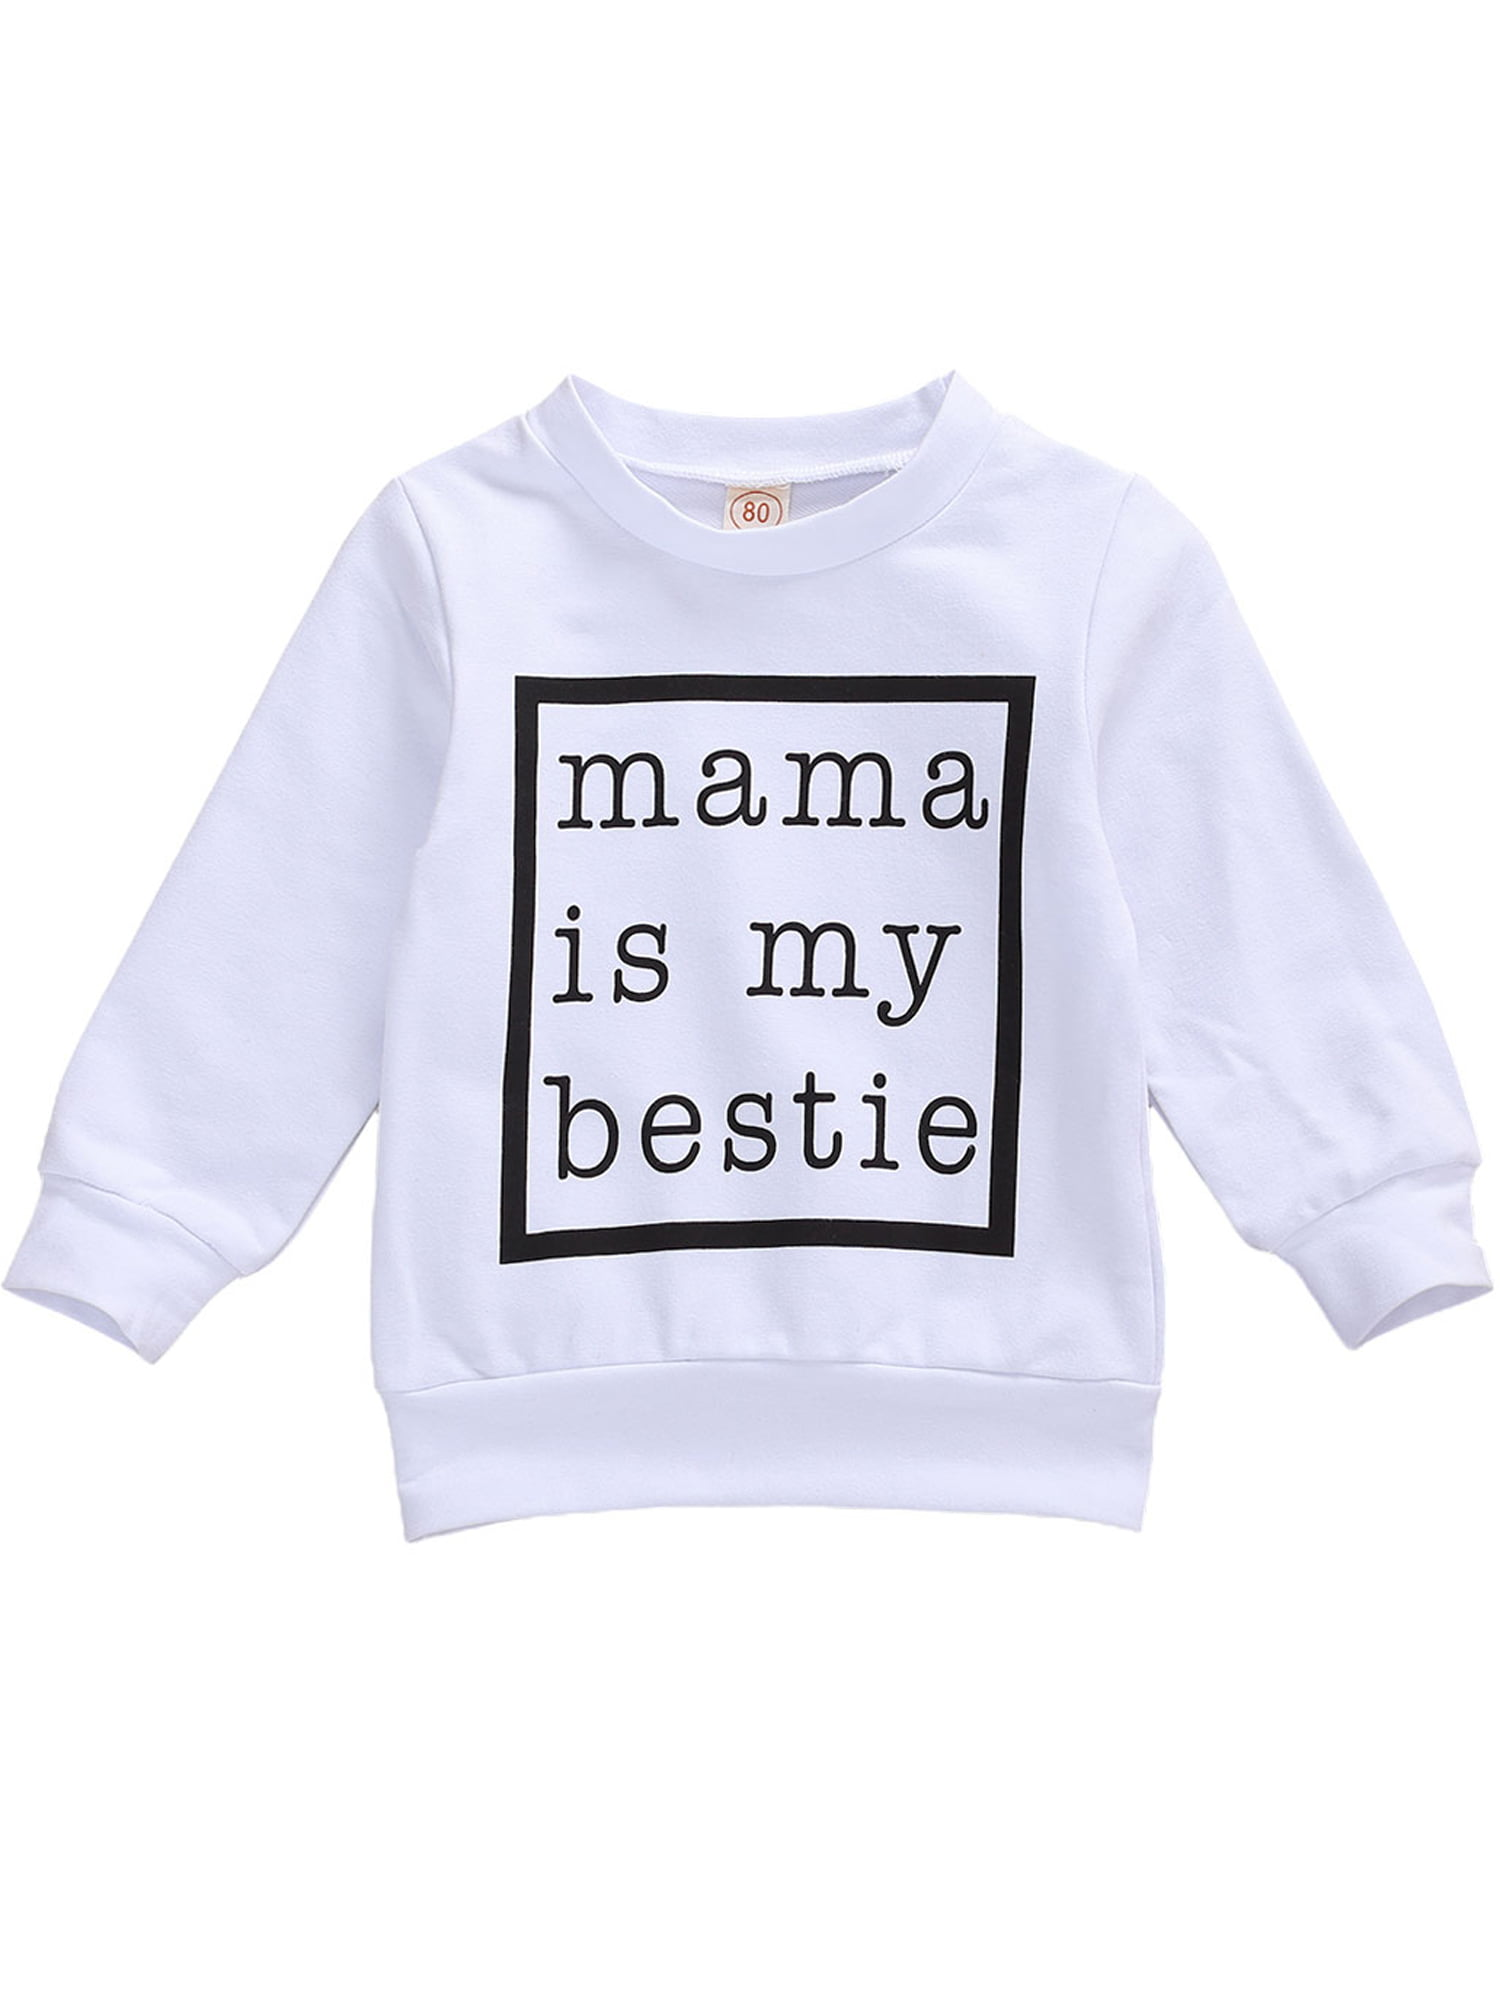 Baby Boy Letter Mom Bestie Print Sweatshirt Long Sleeve Pullover Casual Soft Long T-Shirt Tops Fall Winter Outfits